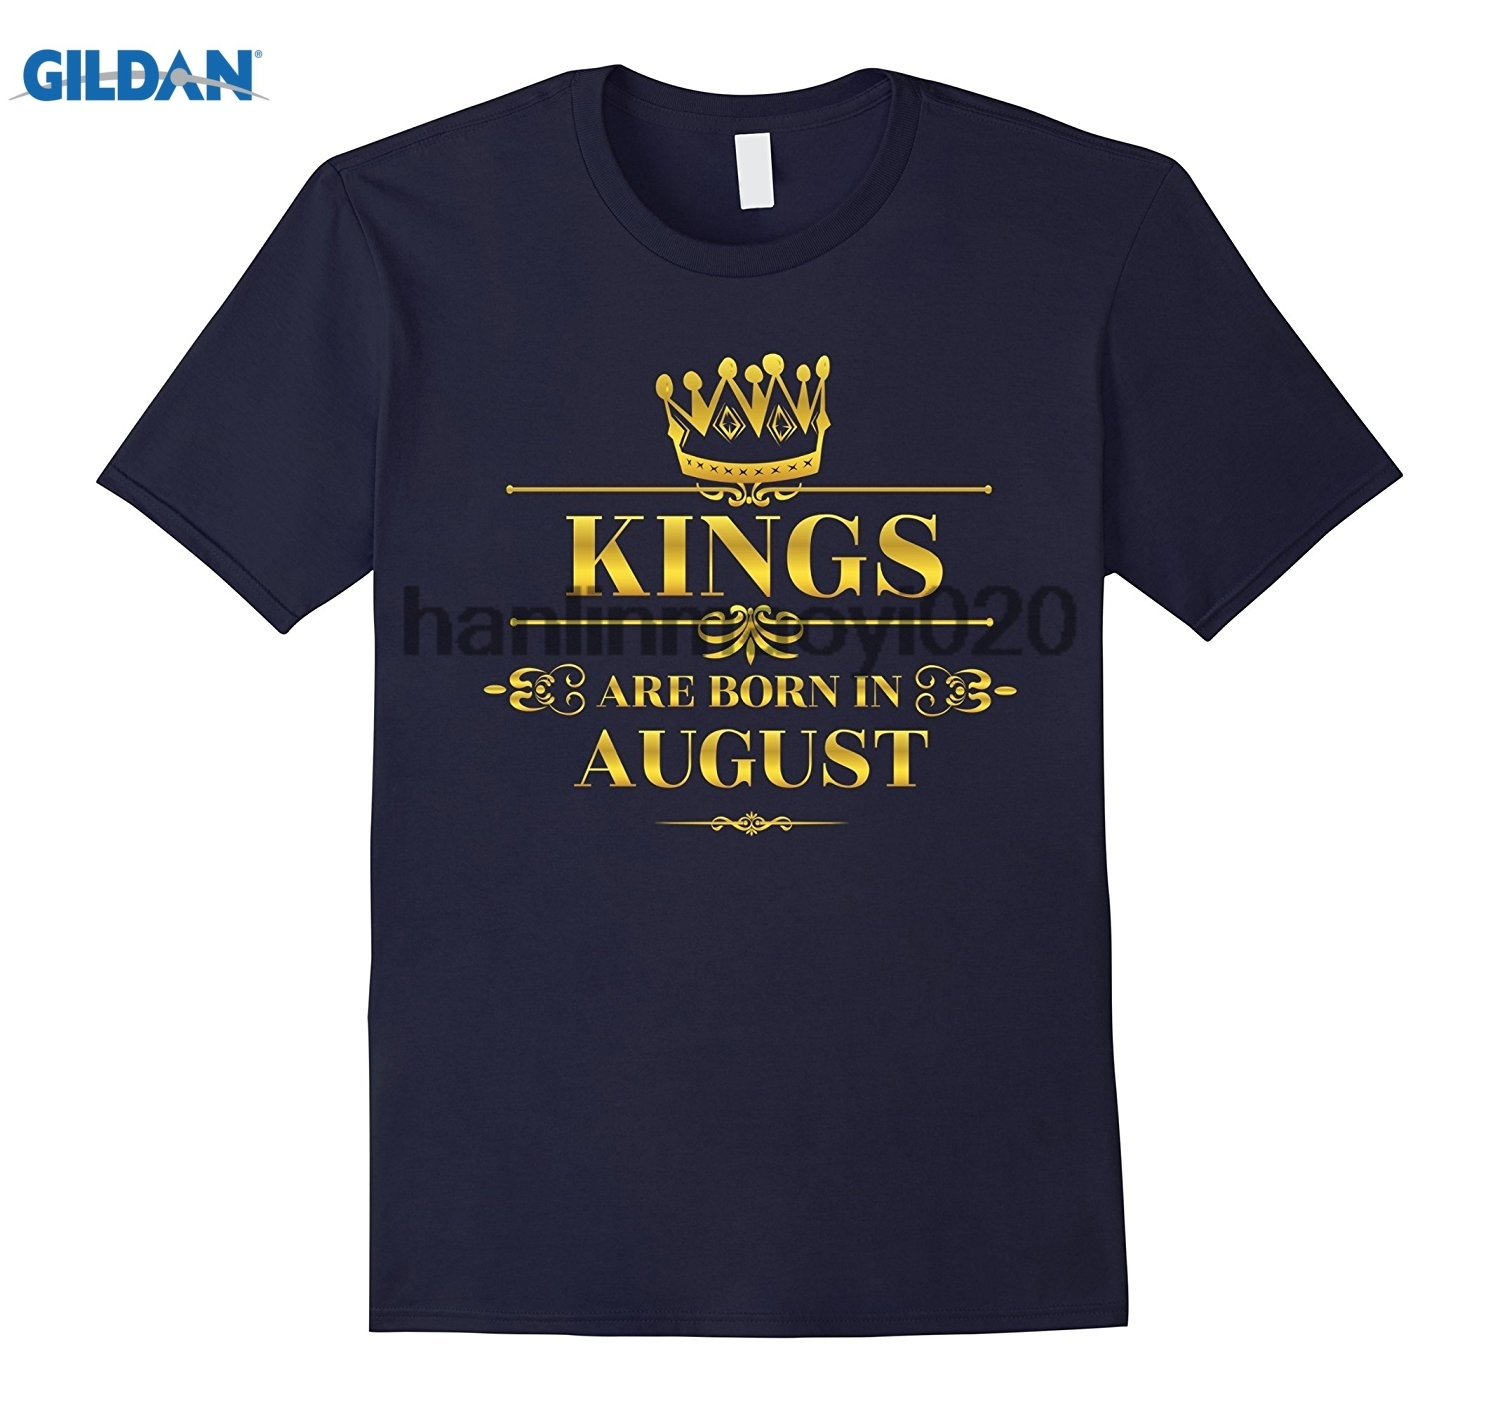 GILDAN Kings are Born in August Funny T-shirt Birthday Boy Gift